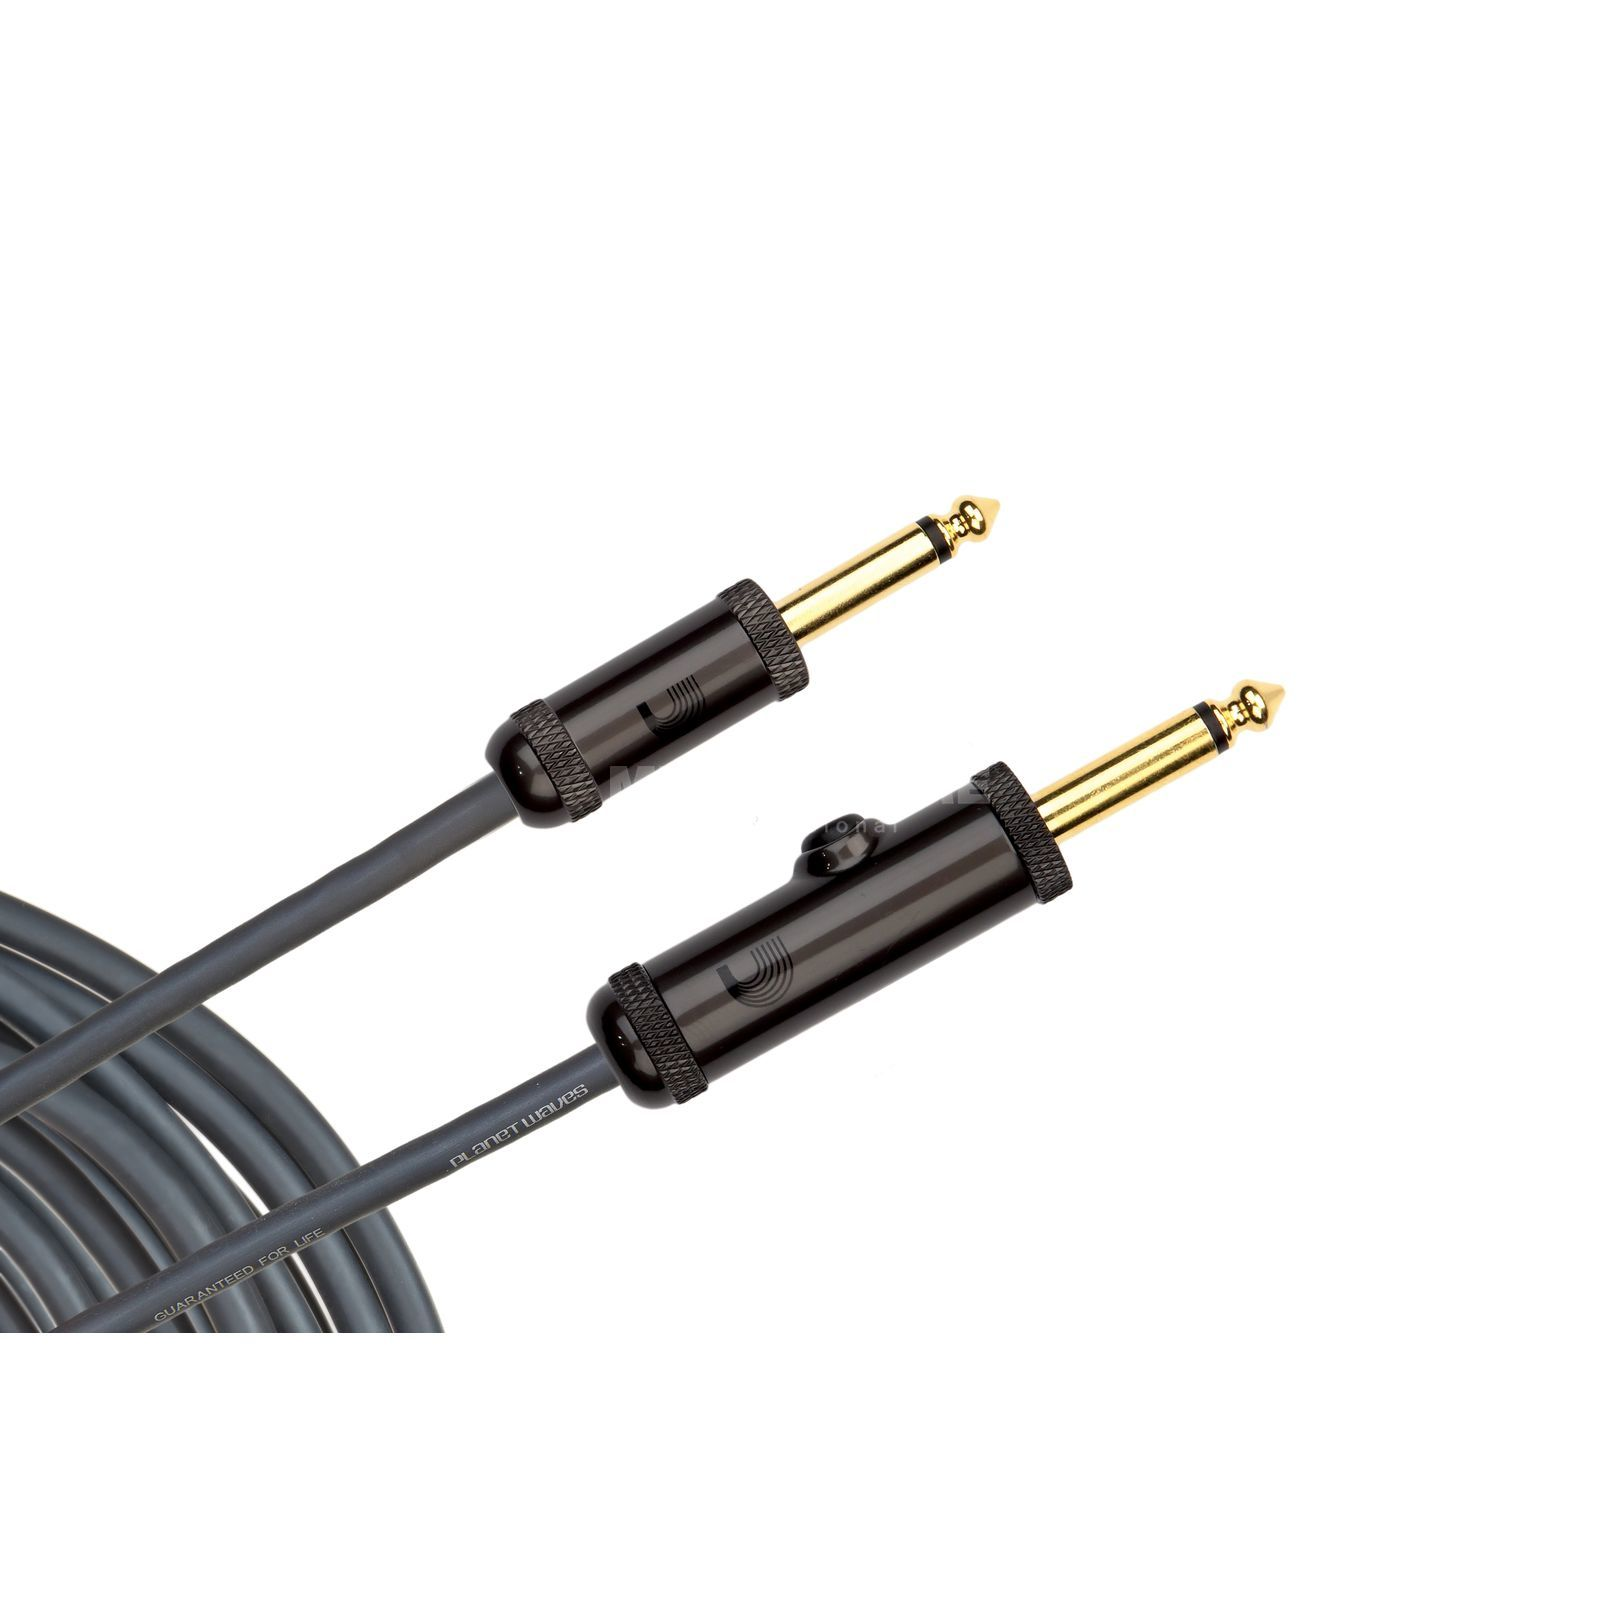 D'Addario Planet Waves Instrument cable 4,5 meter PW-AG-15 Product Image